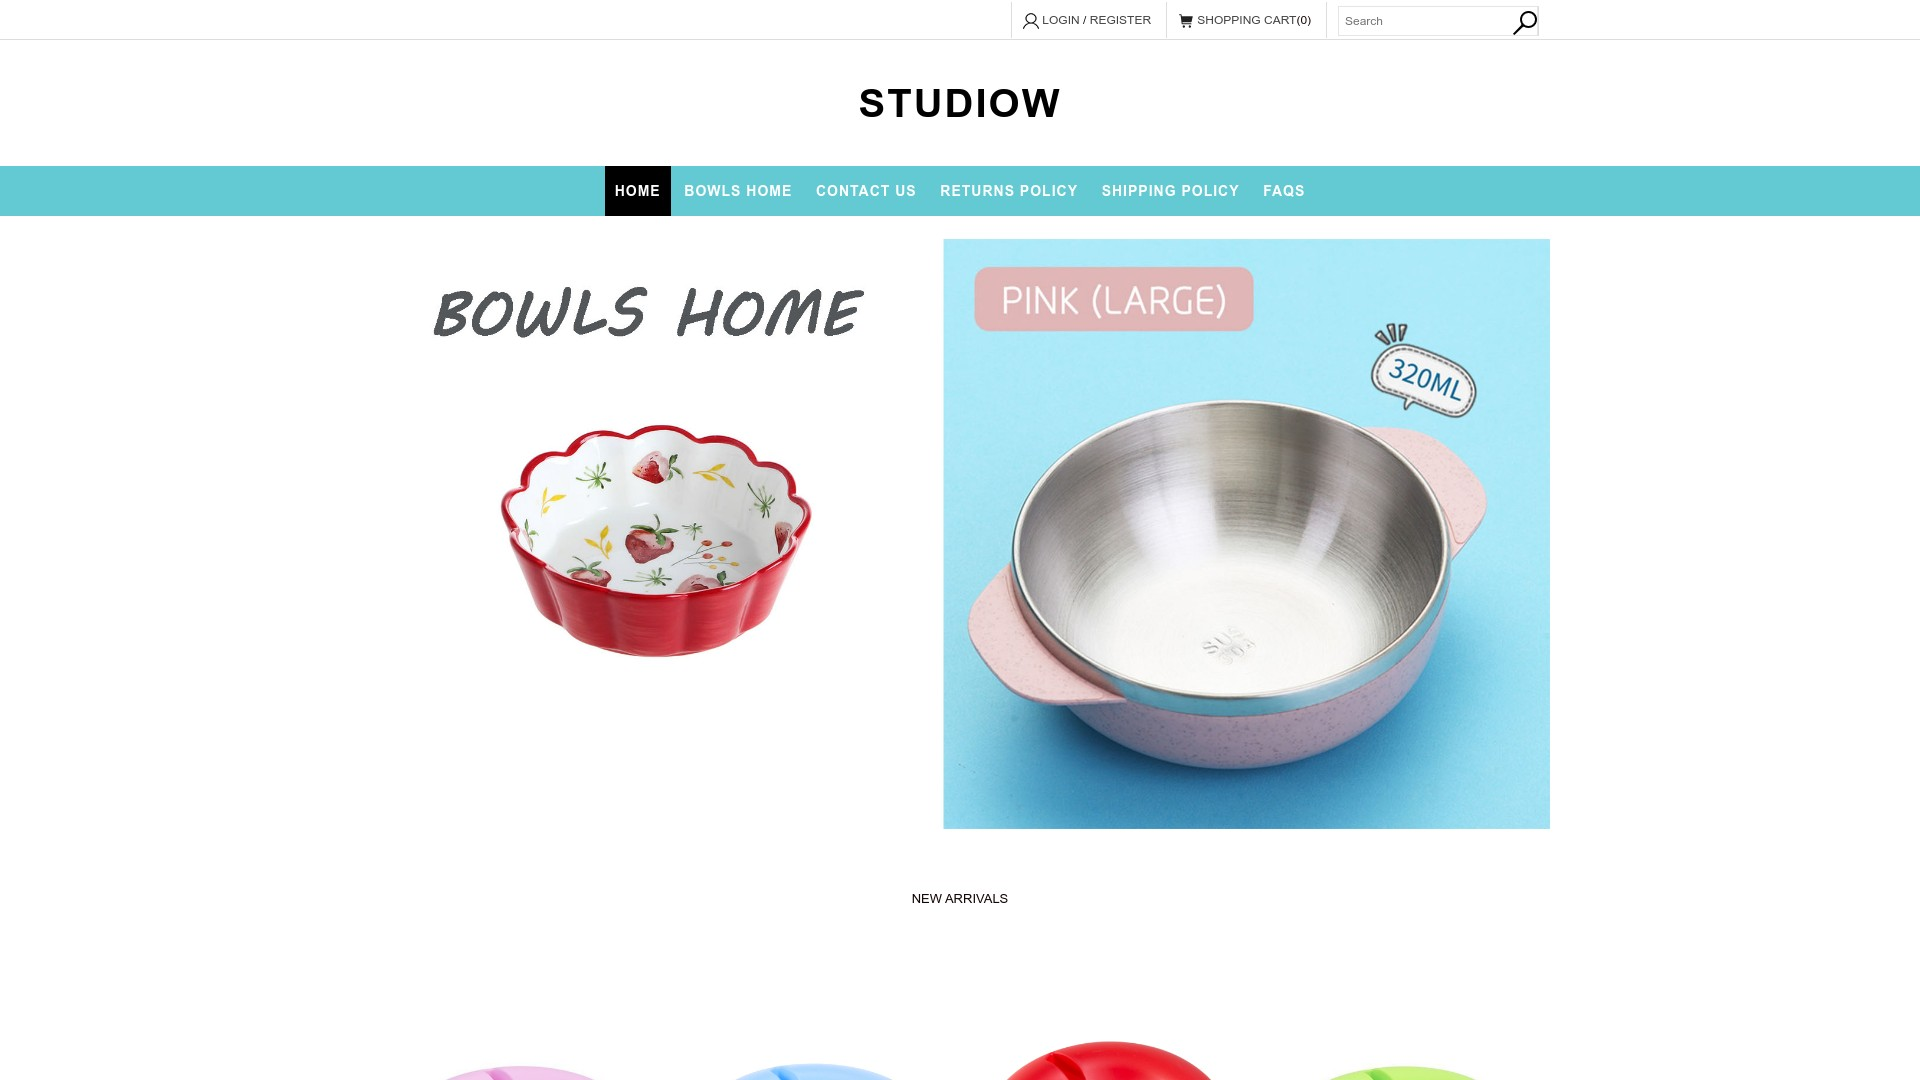 Is Studiow a Scam? Review of the Online Store